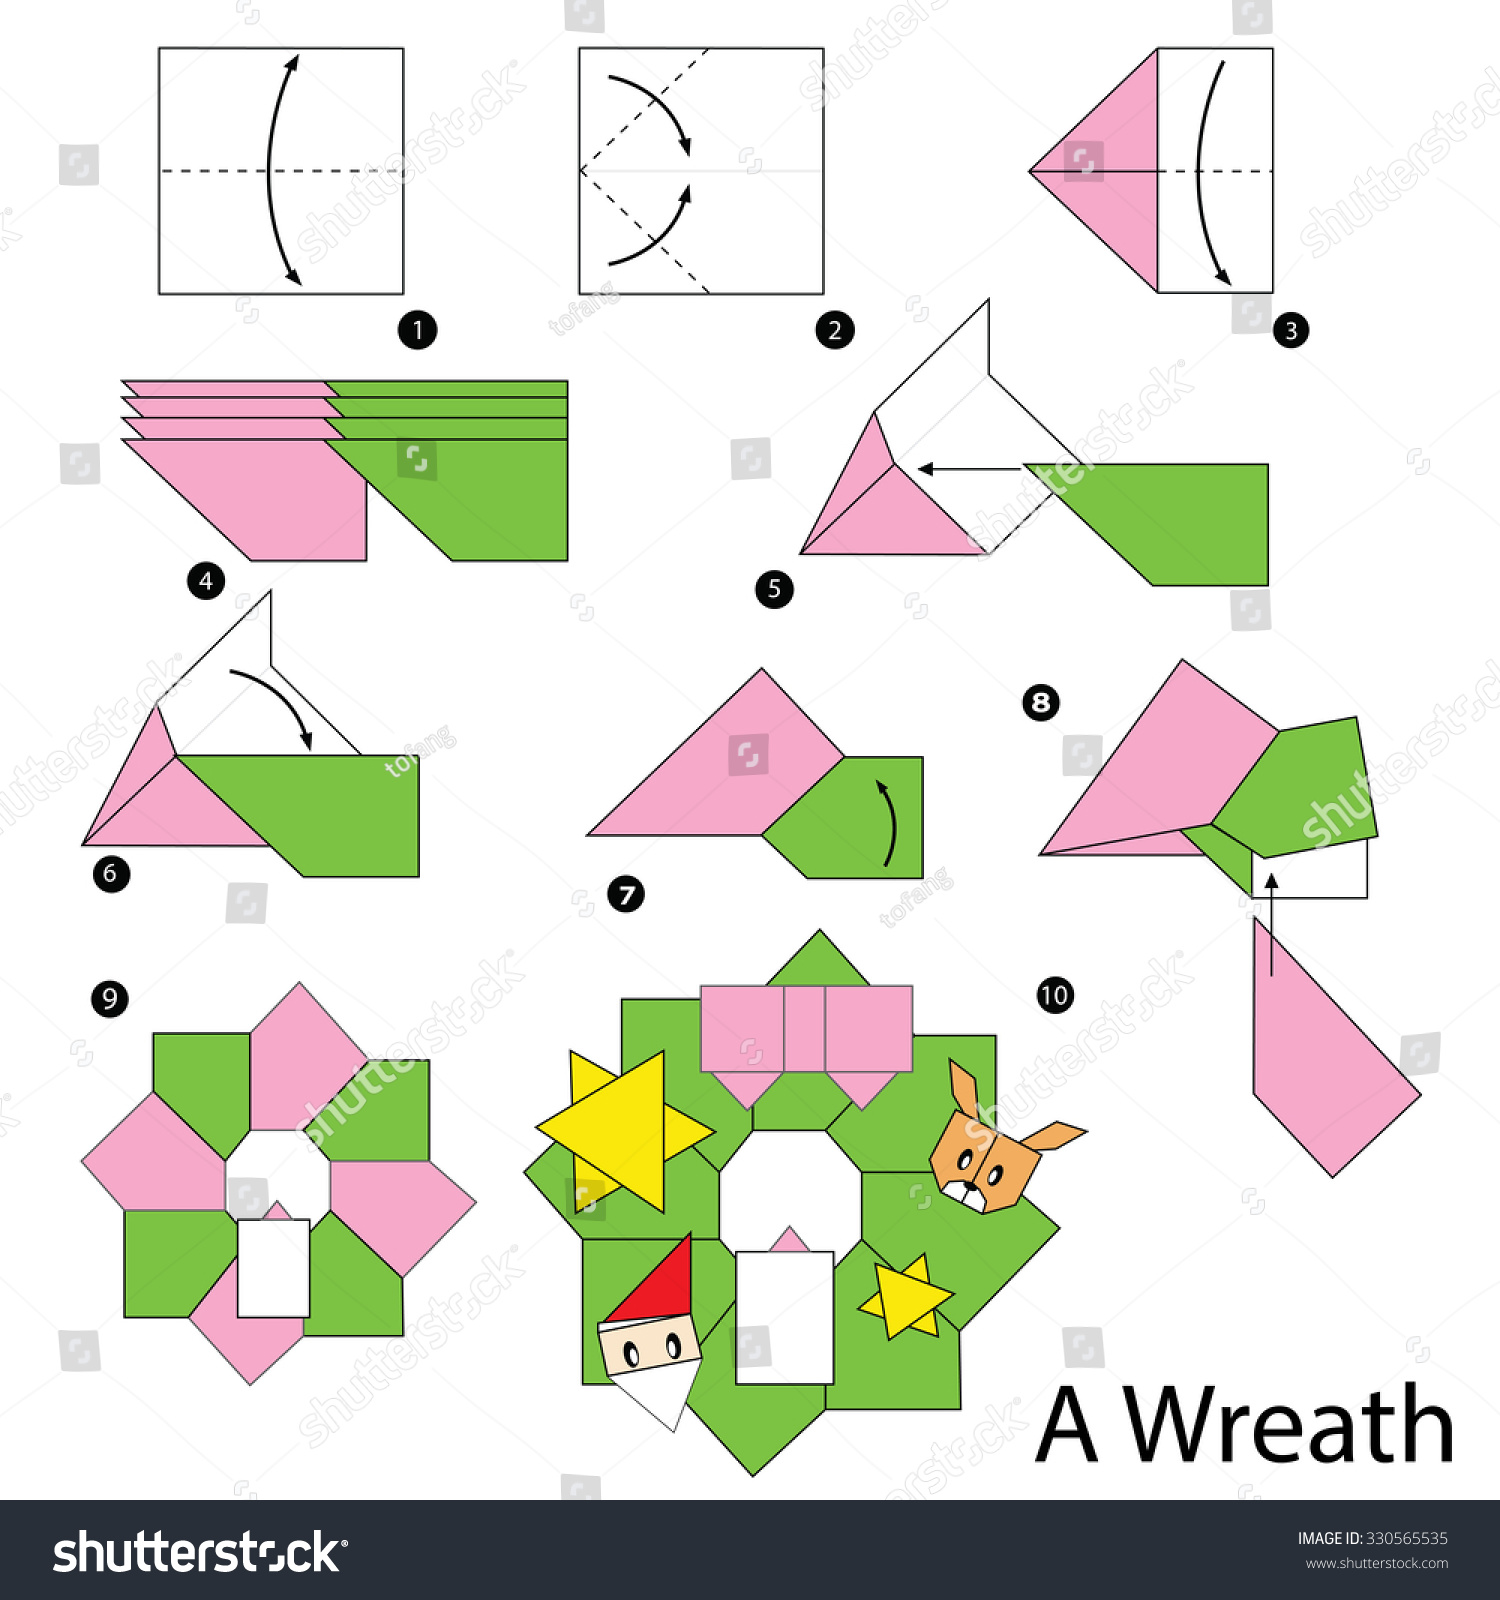 Christmas origami wreath - Step By Step Instructions How To Make Origami Christmas Wreath